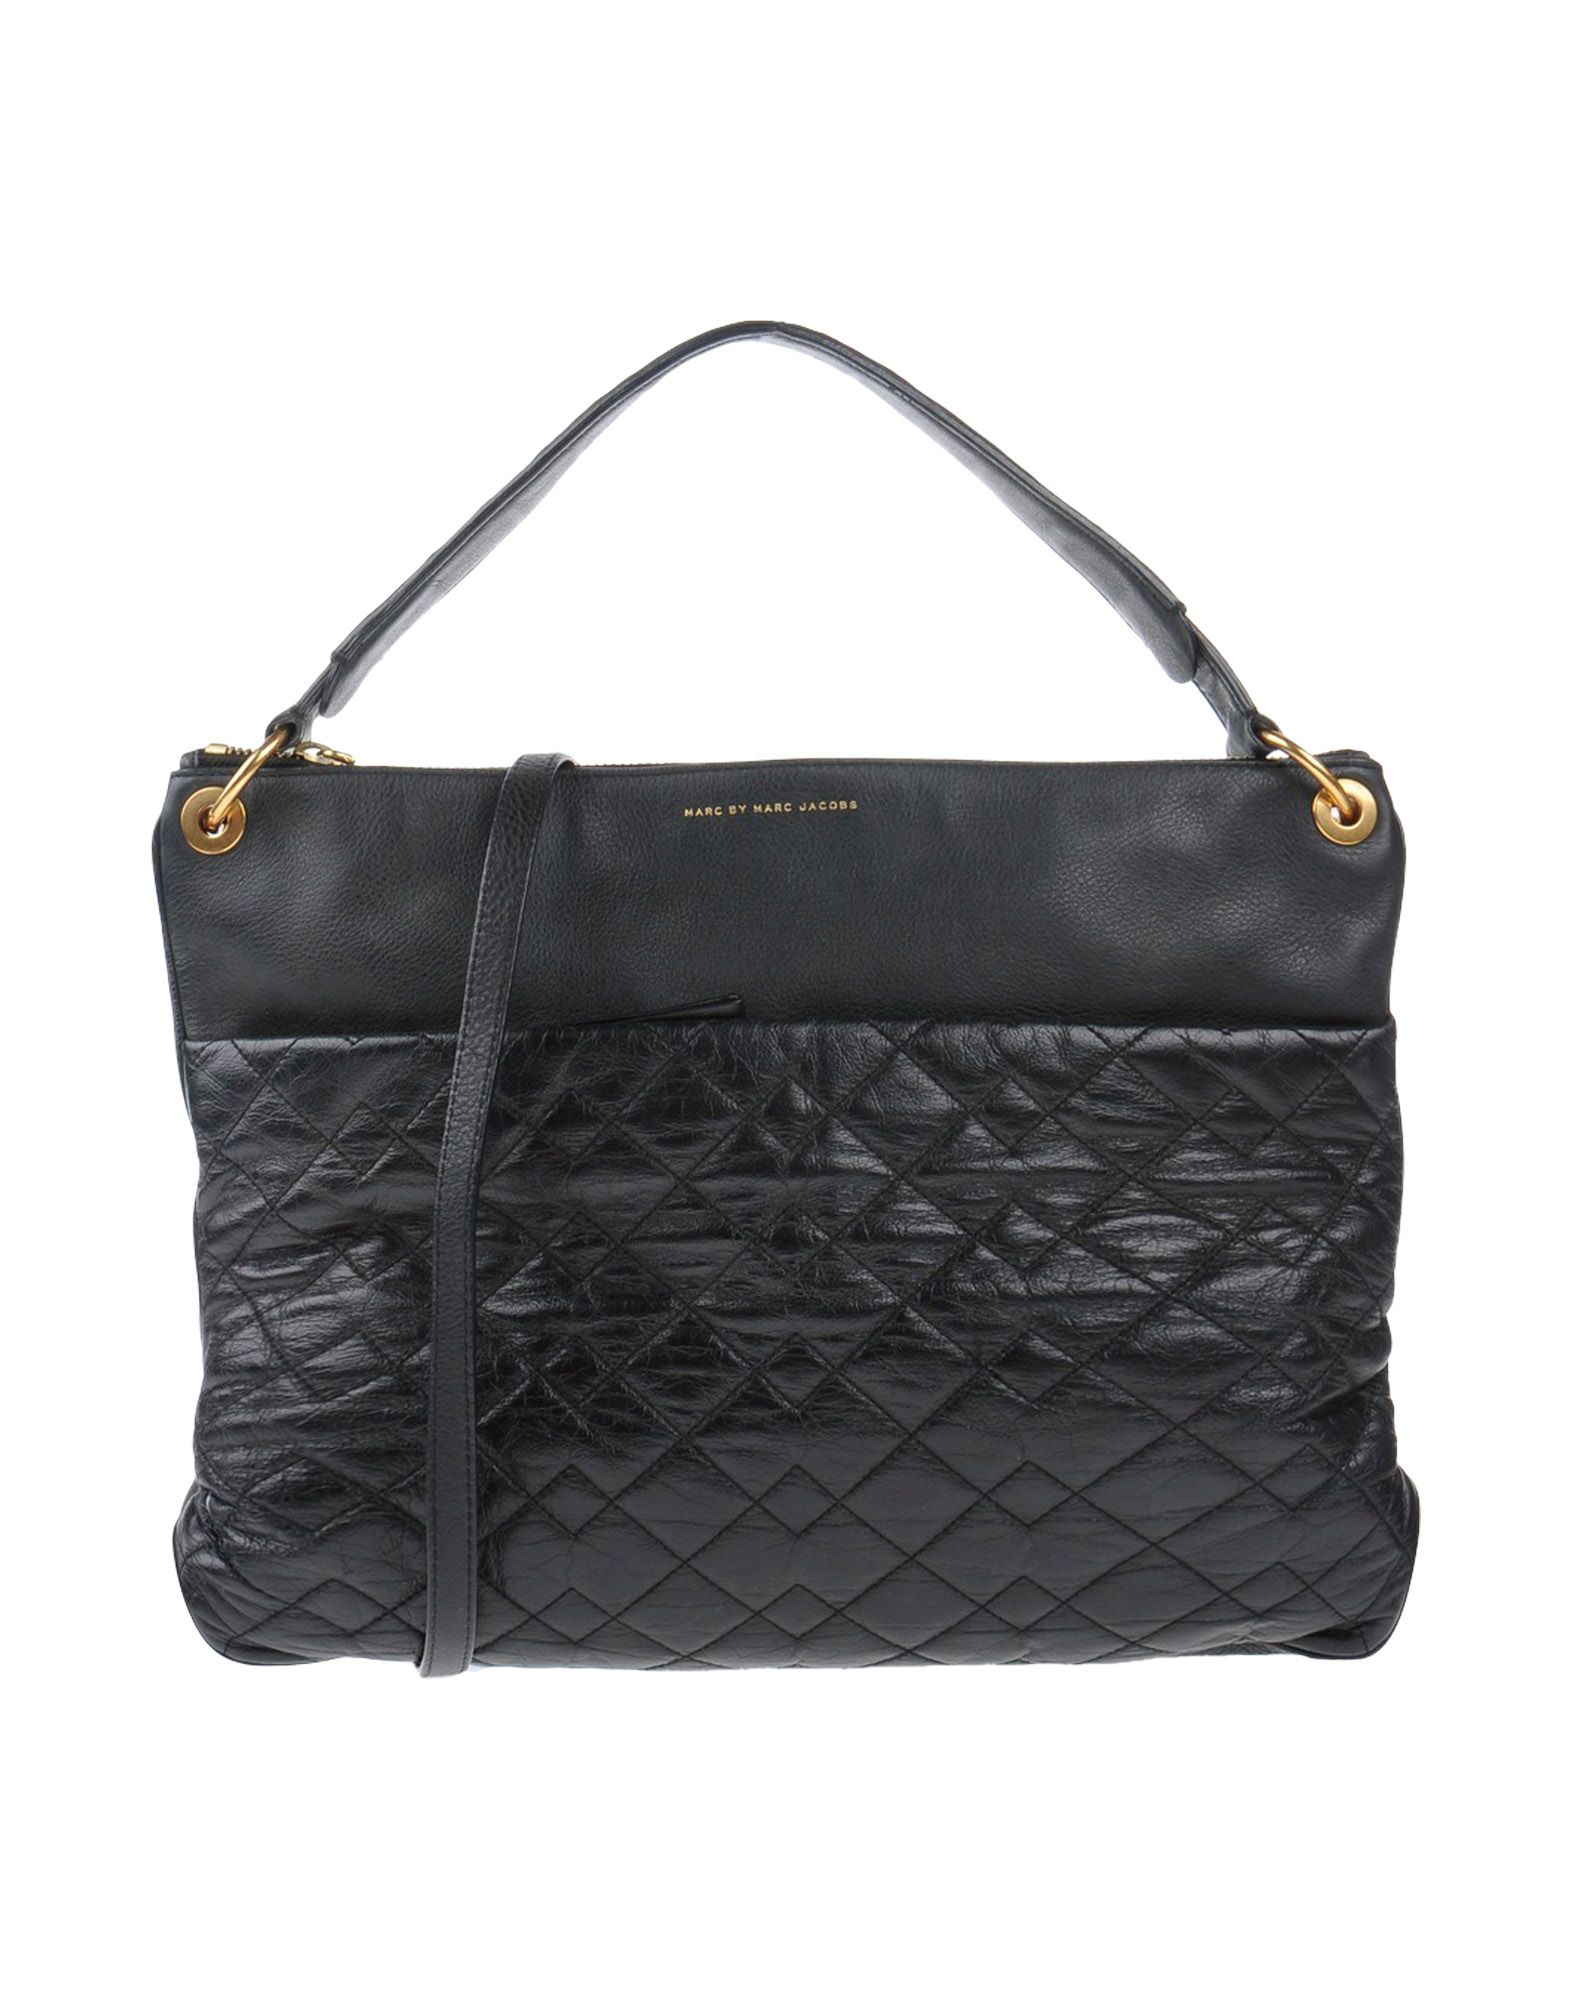 Borsa A Mano Marc By Marc Jacobs Donna - Acquista online su